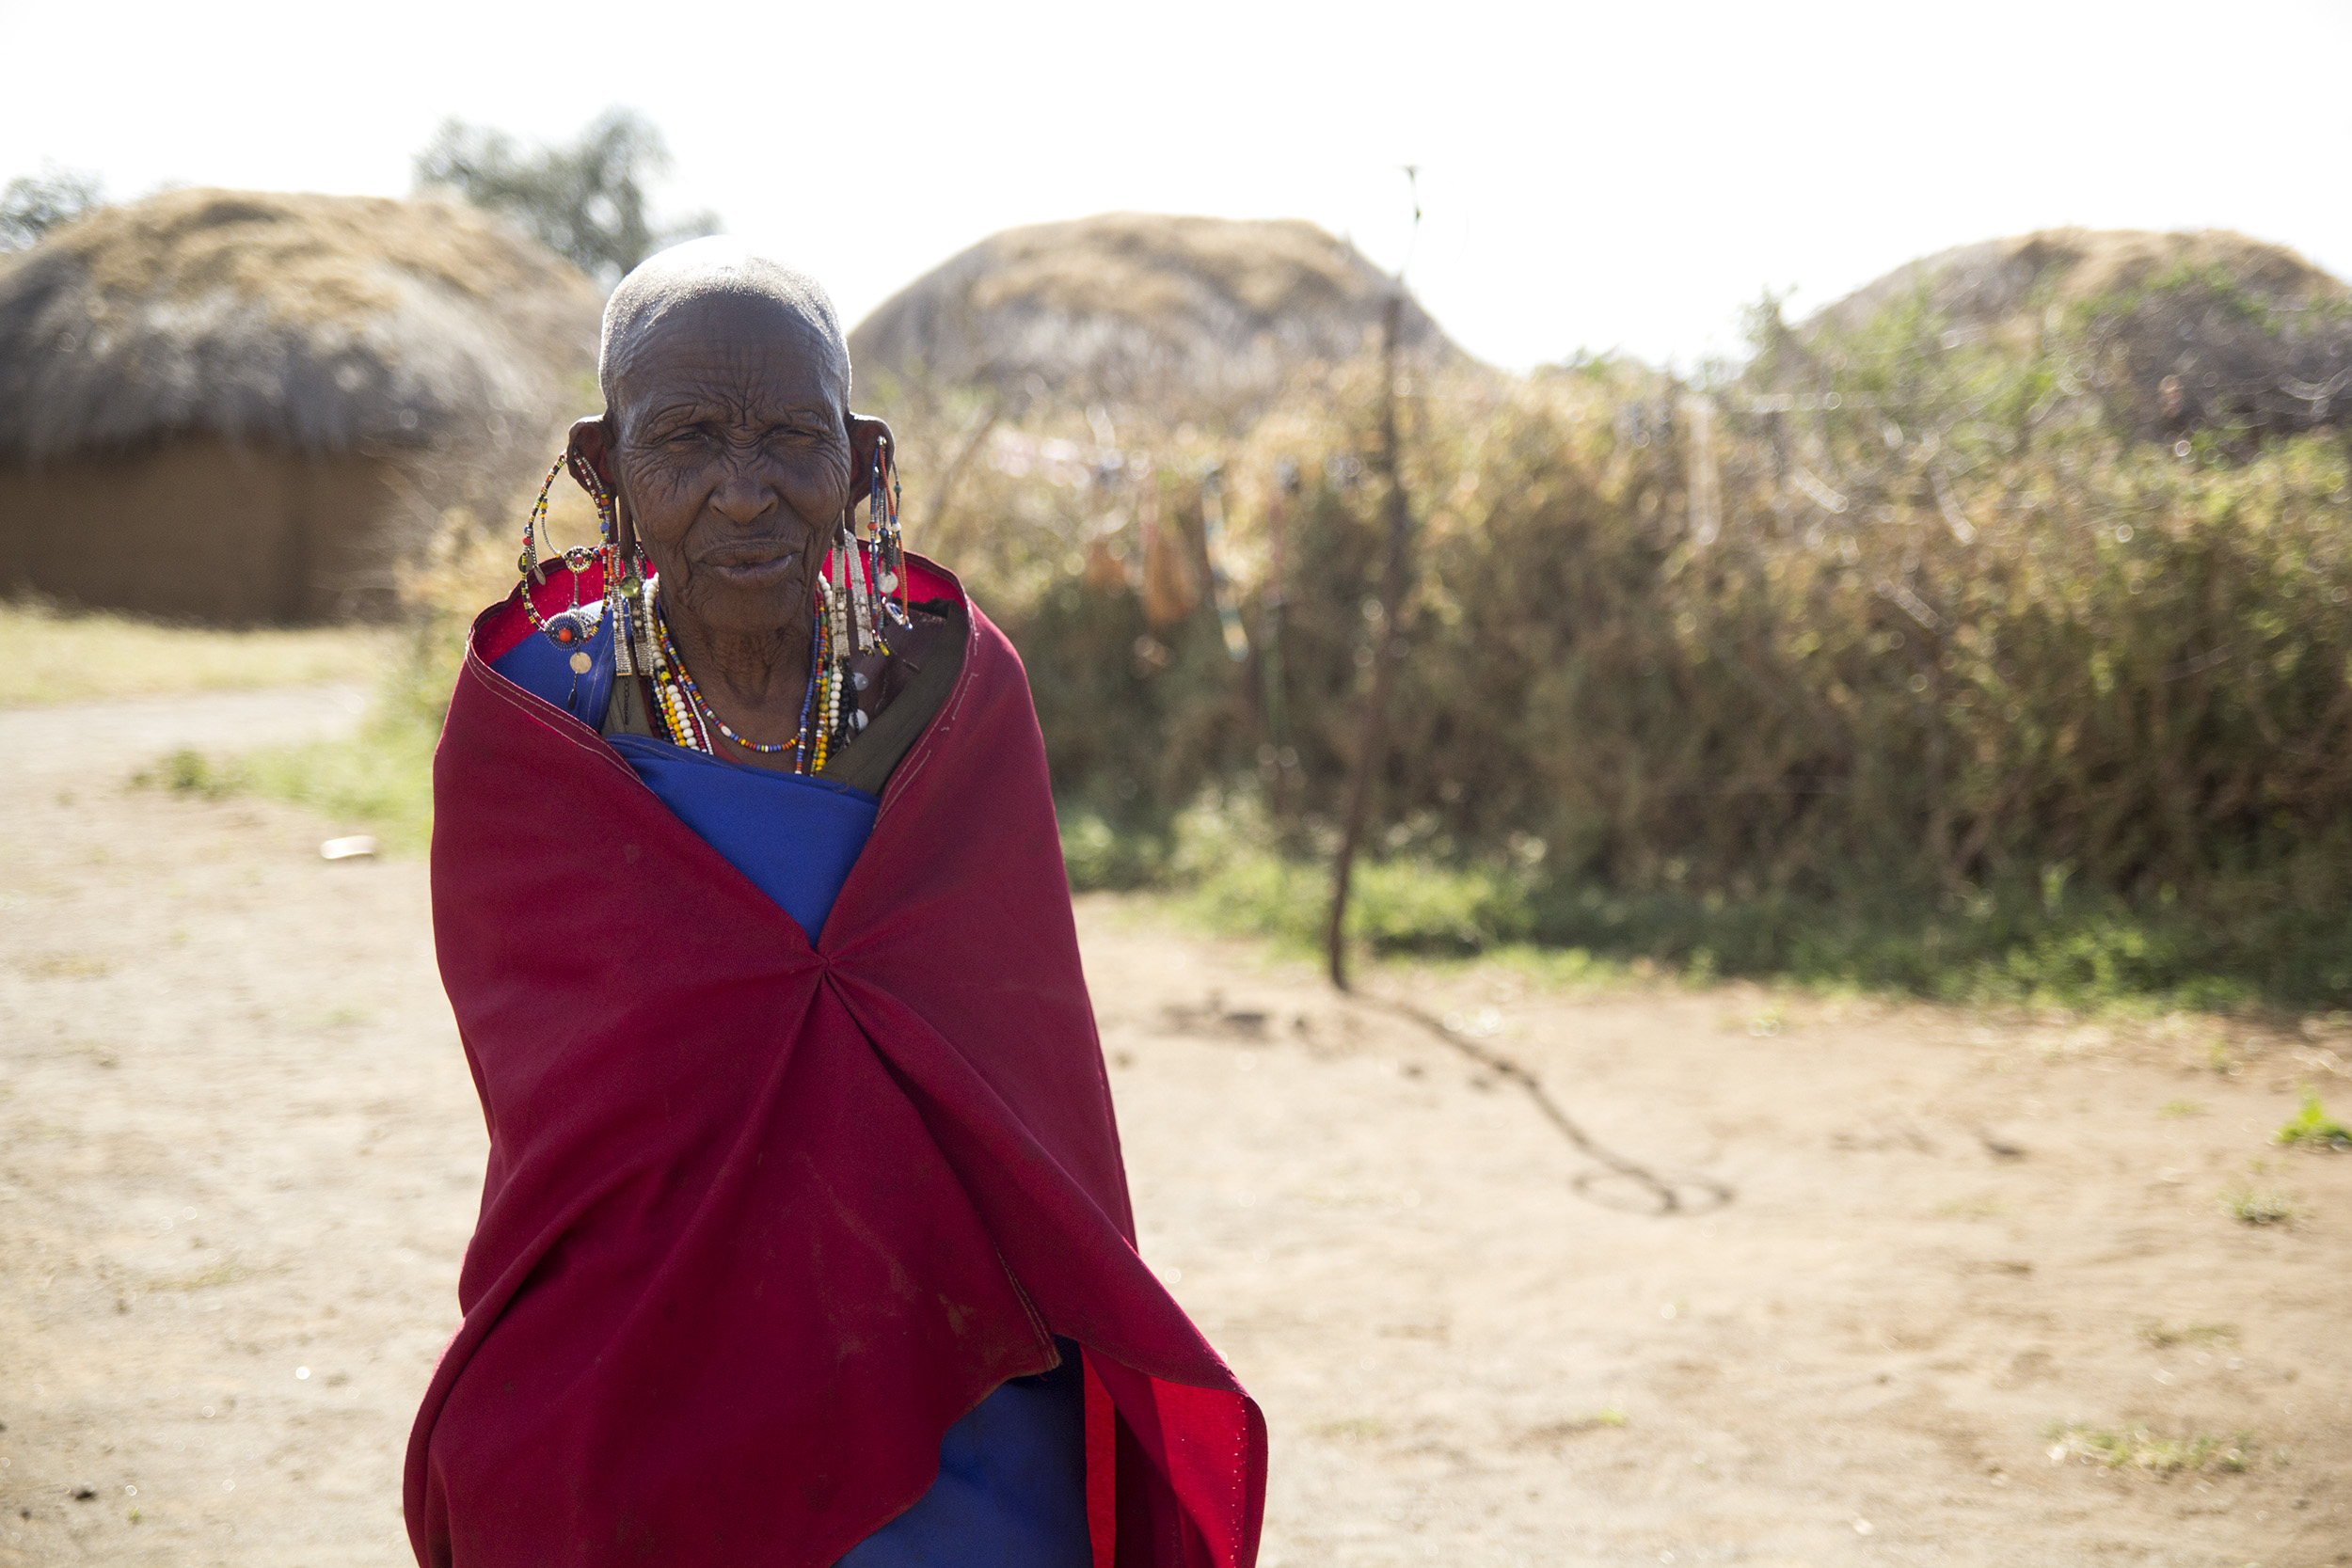 This wonderful woman's name is Koko (which means Grandma in Maasai). She made us the most delicious tea I've ever had in my life.